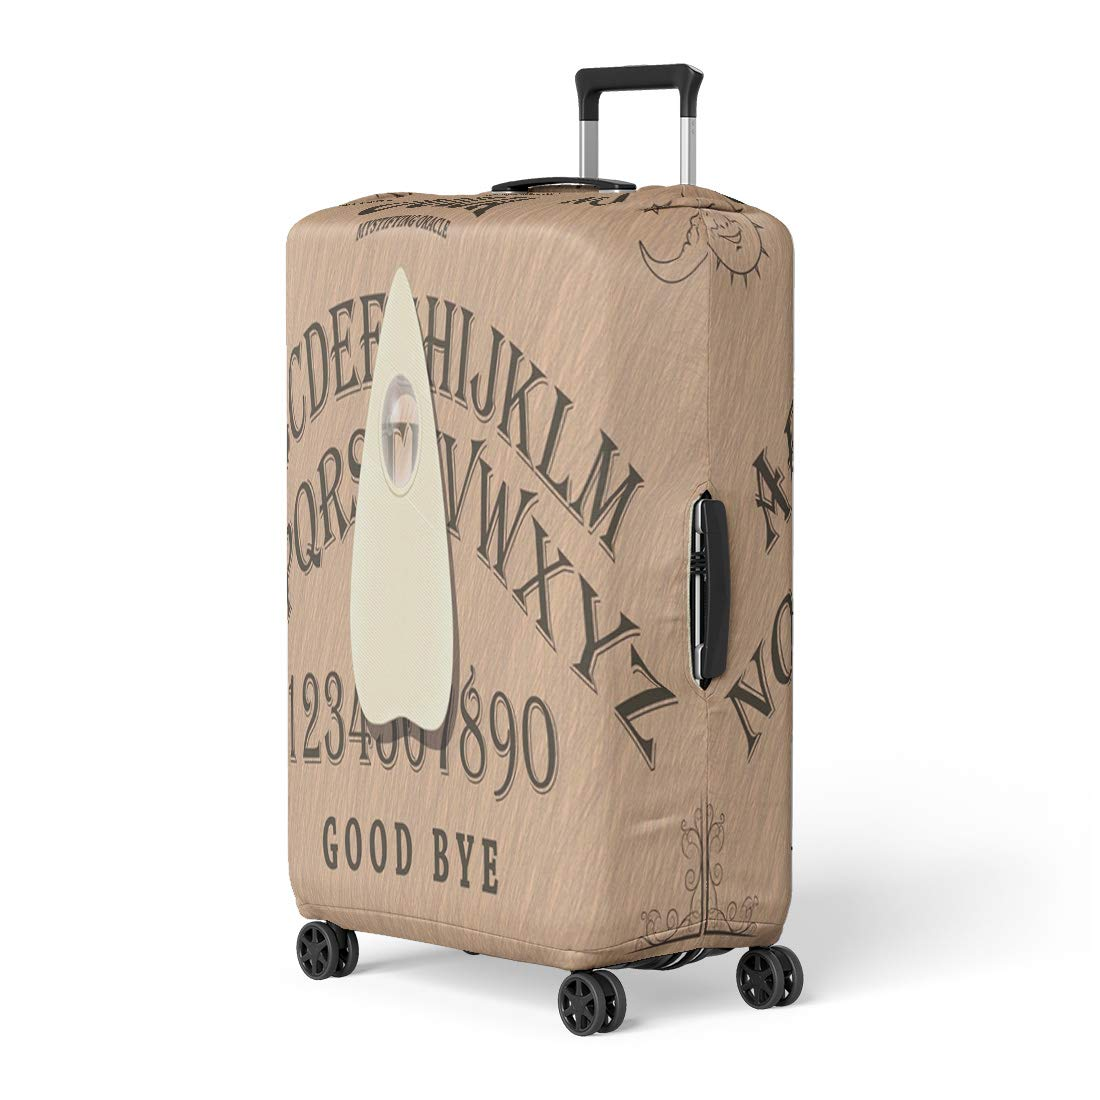 Pinbeam Luggage Cover Brown Angel Ouija Board Cardboard Contact Demon Devil Travel Suitcase Cover Protector Baggage Case Fits 18-22 inches by Pinbeam